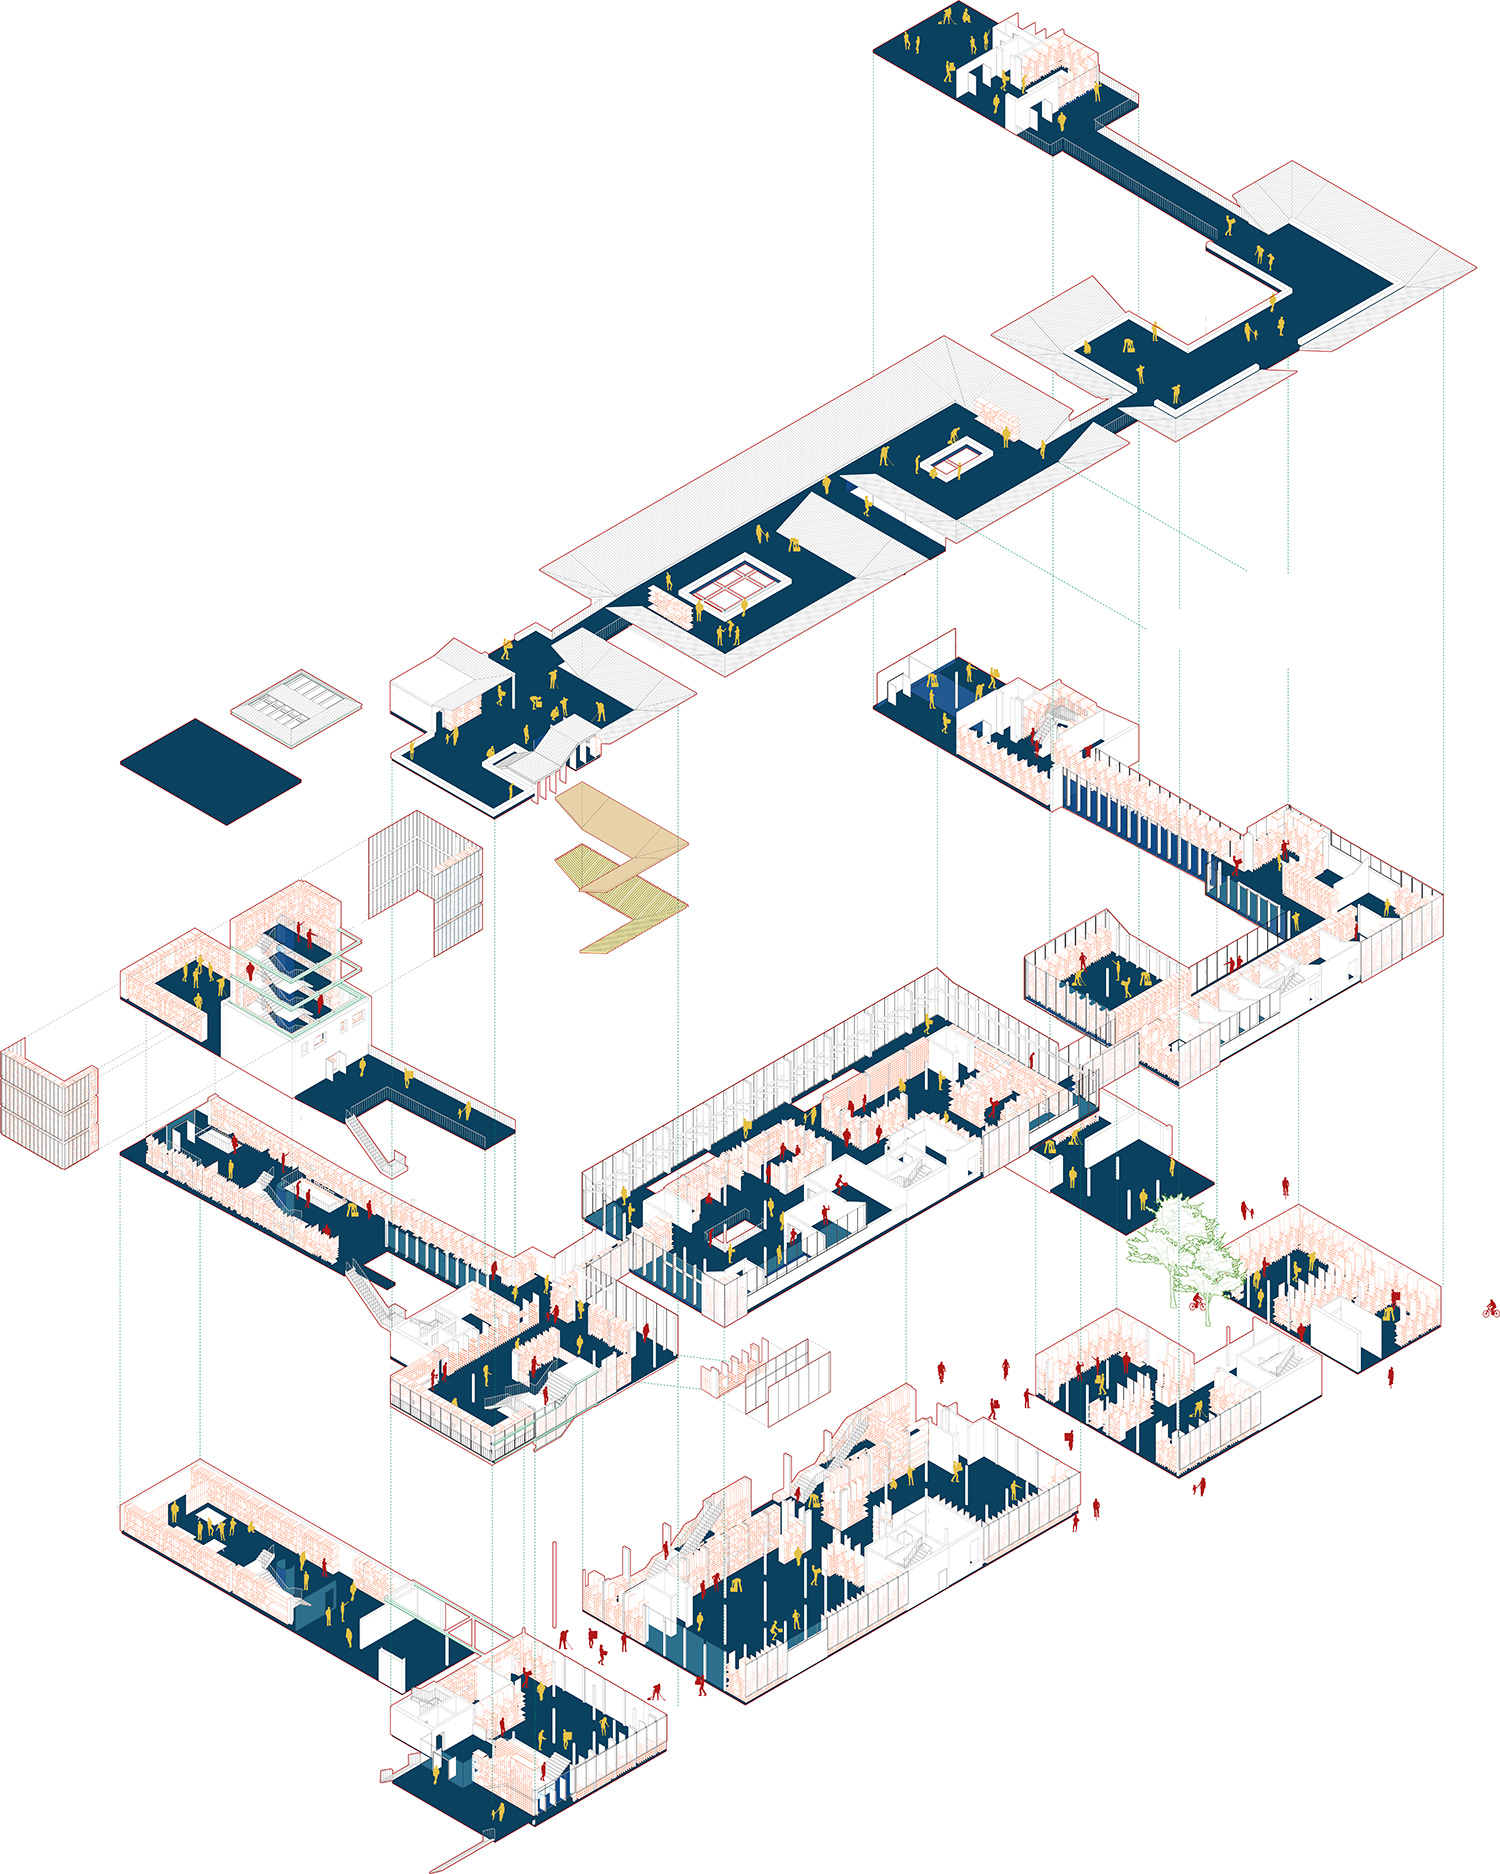 Dalston share and repair centre exploded axonometric